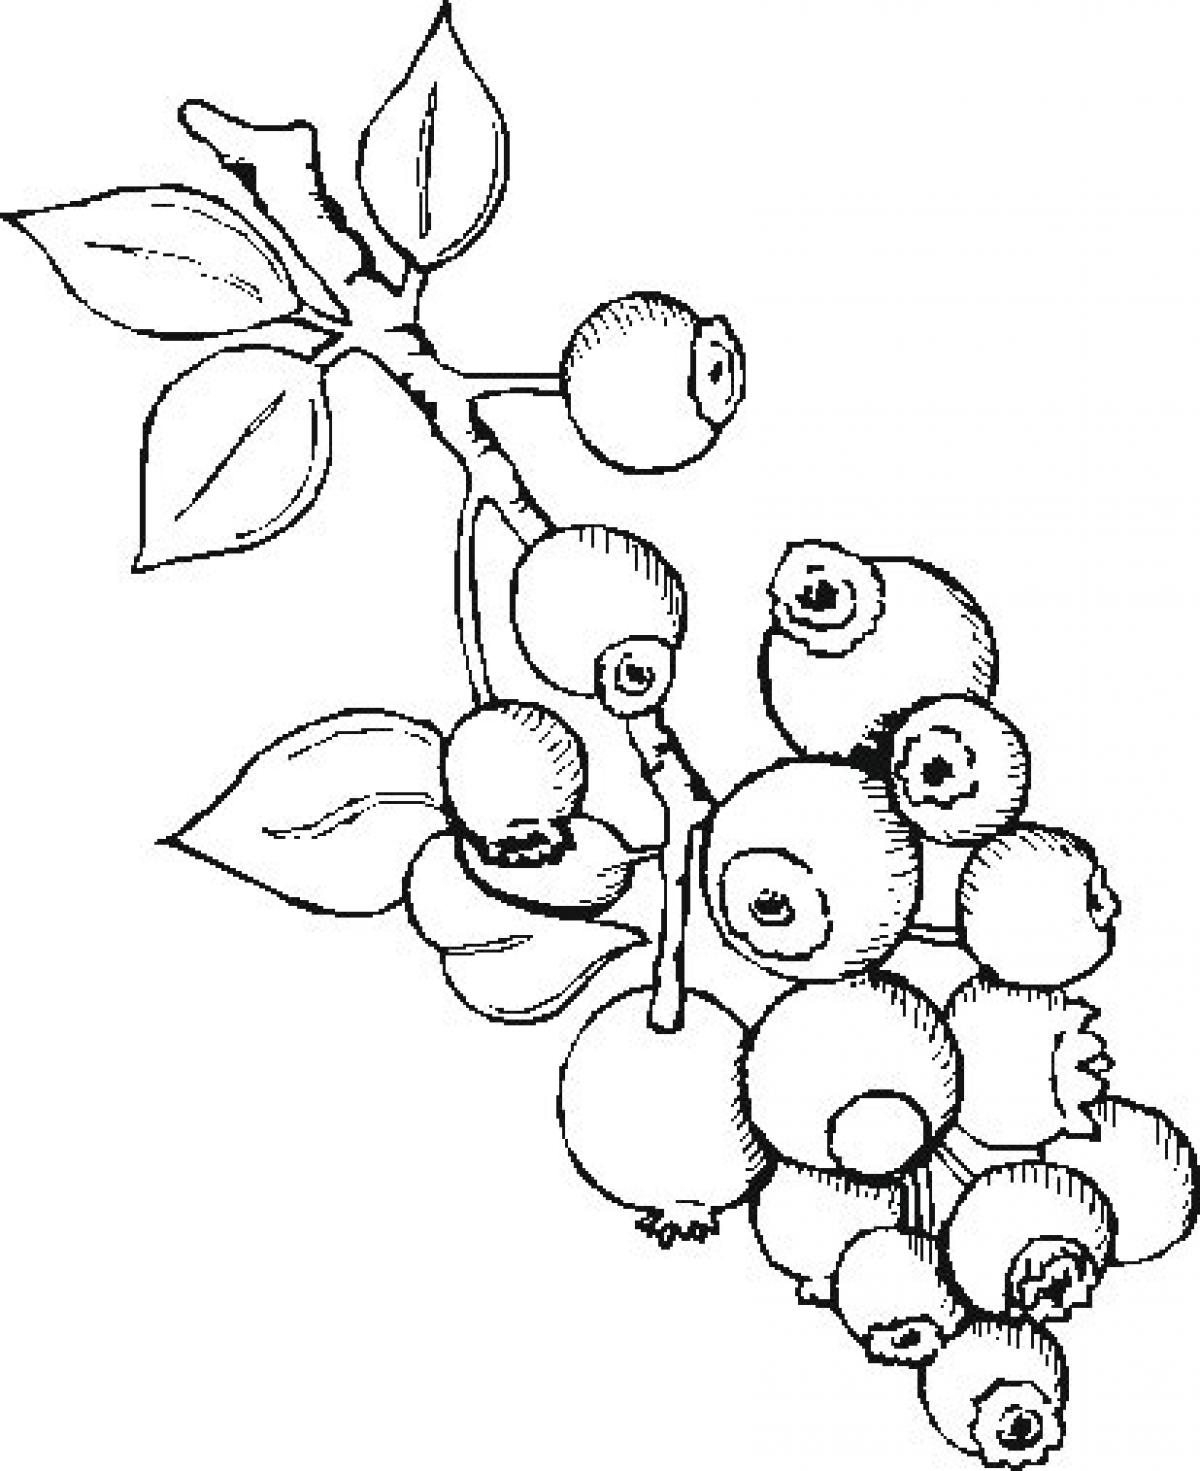 Berries clipart outline. Drawing at getdrawings com